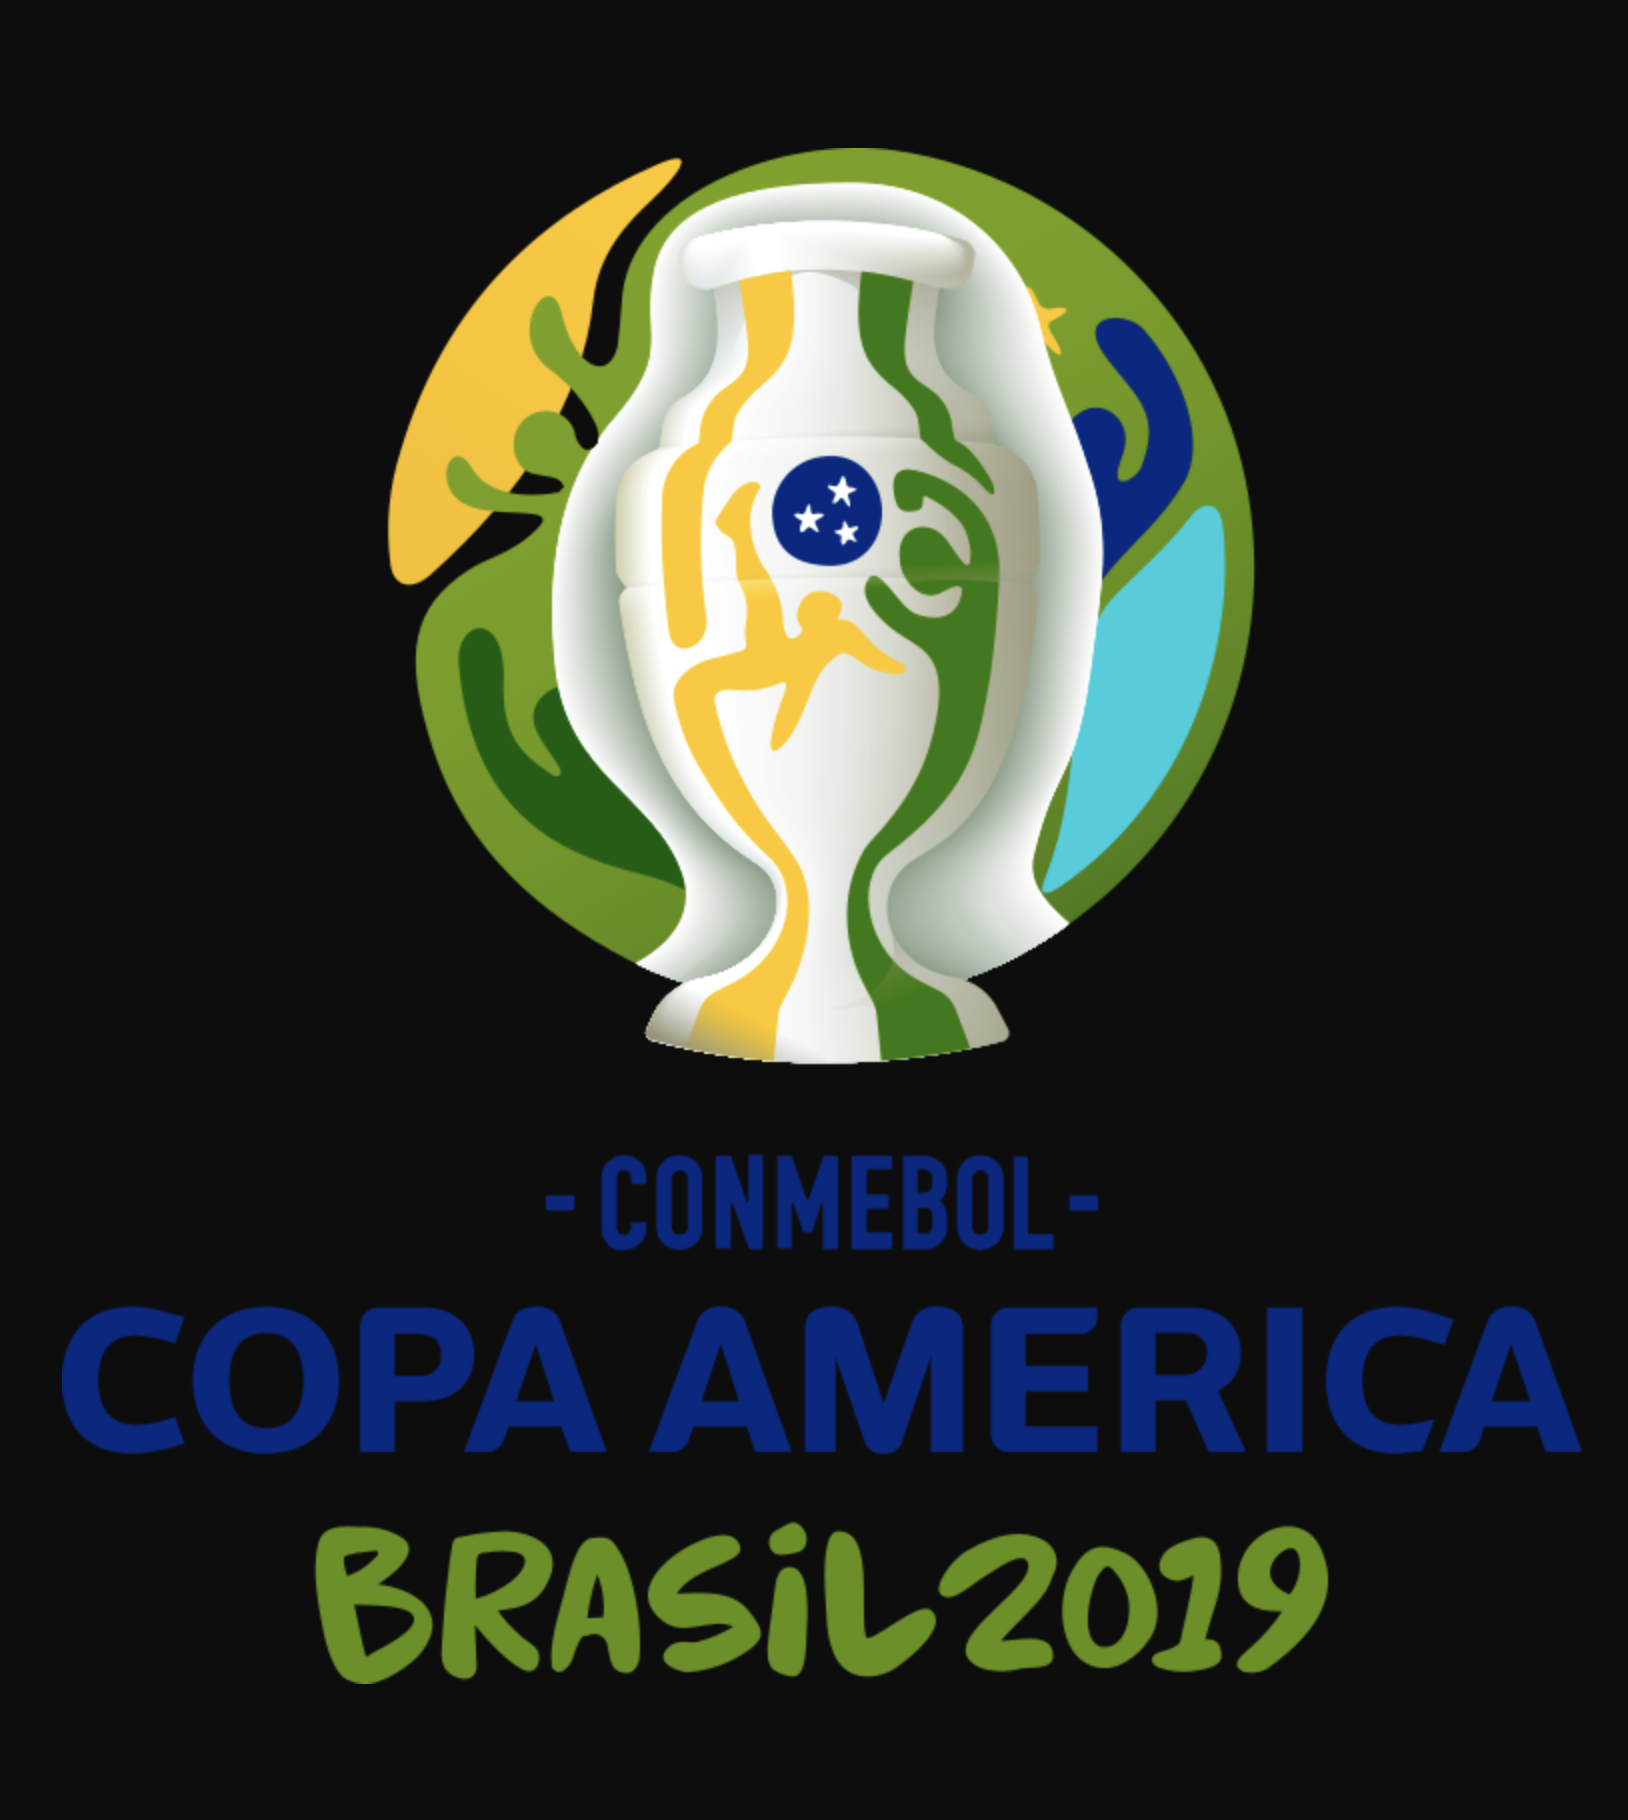 Who Will Win the Copa America 2019 Tournament?